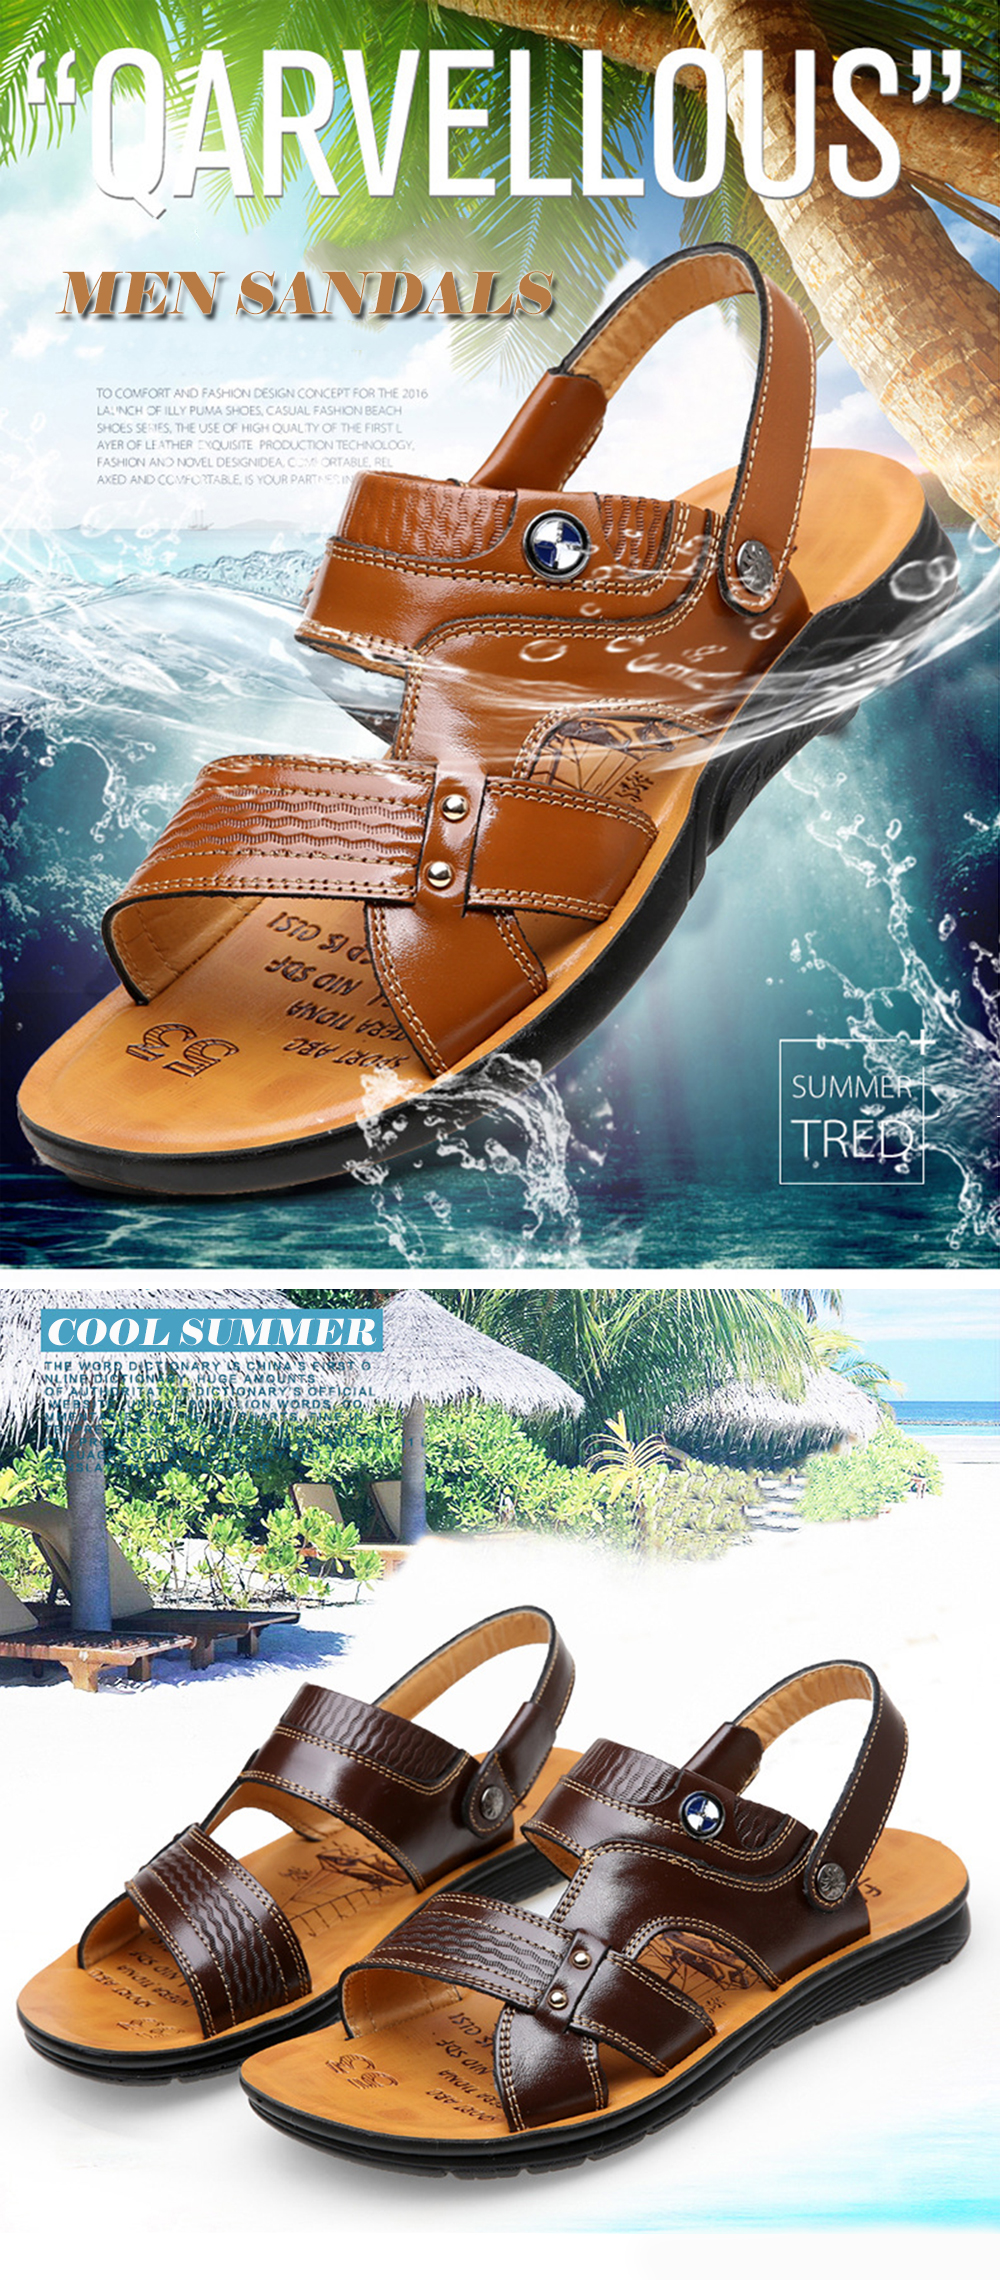 Summer Cool Sandals Cowhide Leather Durable Beach Shoes for Men